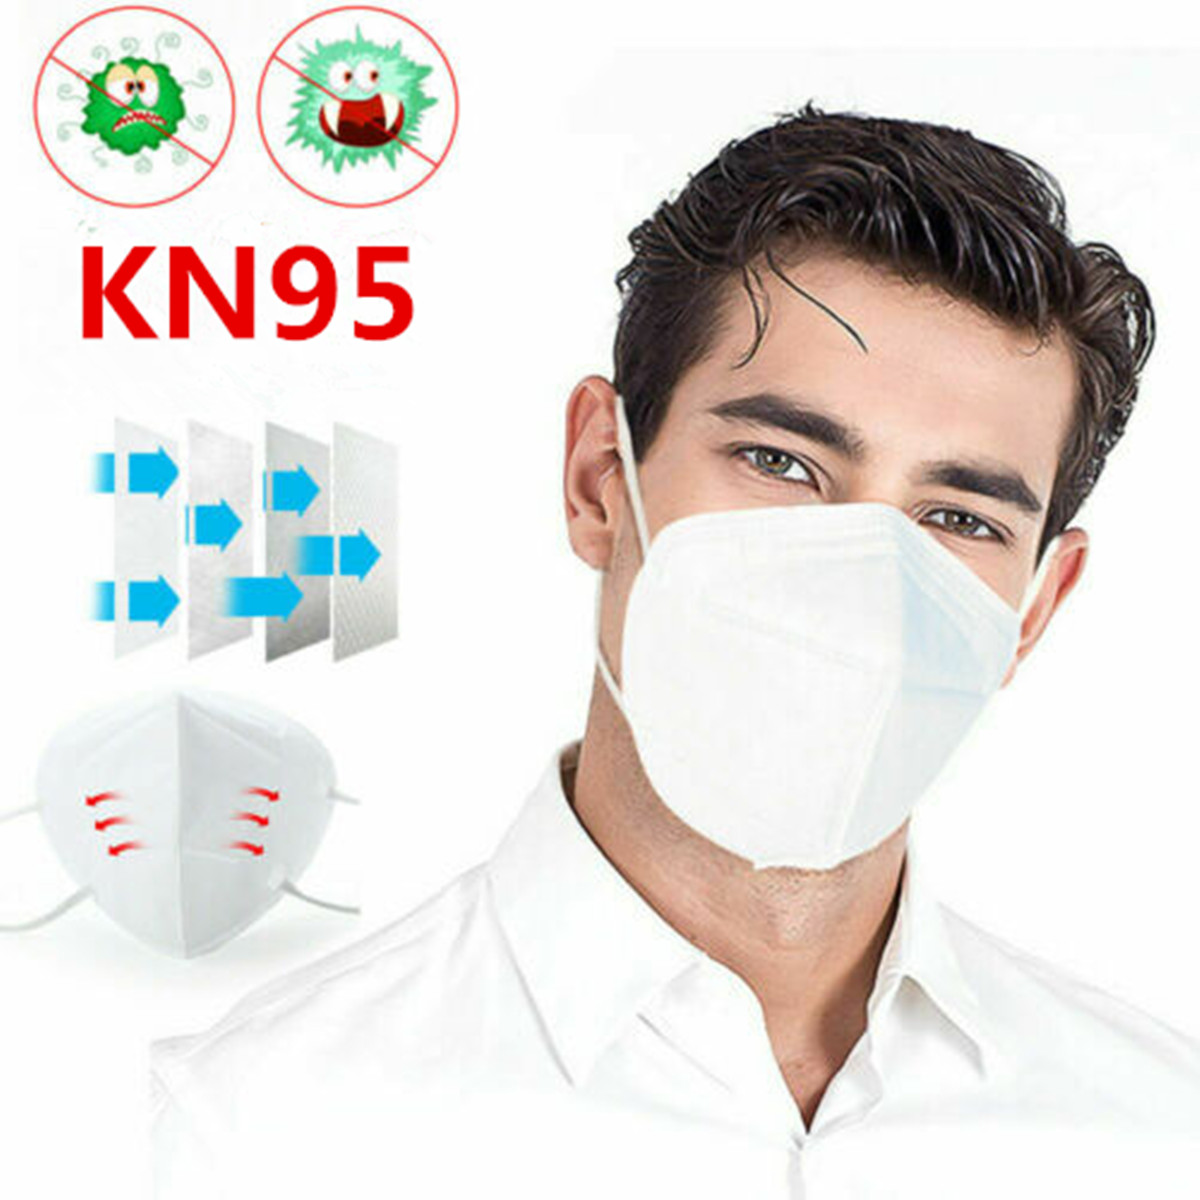 2Pcs KN95 N95 FFP2 4-Layer Safety Protective Mouth MaskAnti Particulate Respirators Face Mask Breathable Anti-Dust Filter Masks